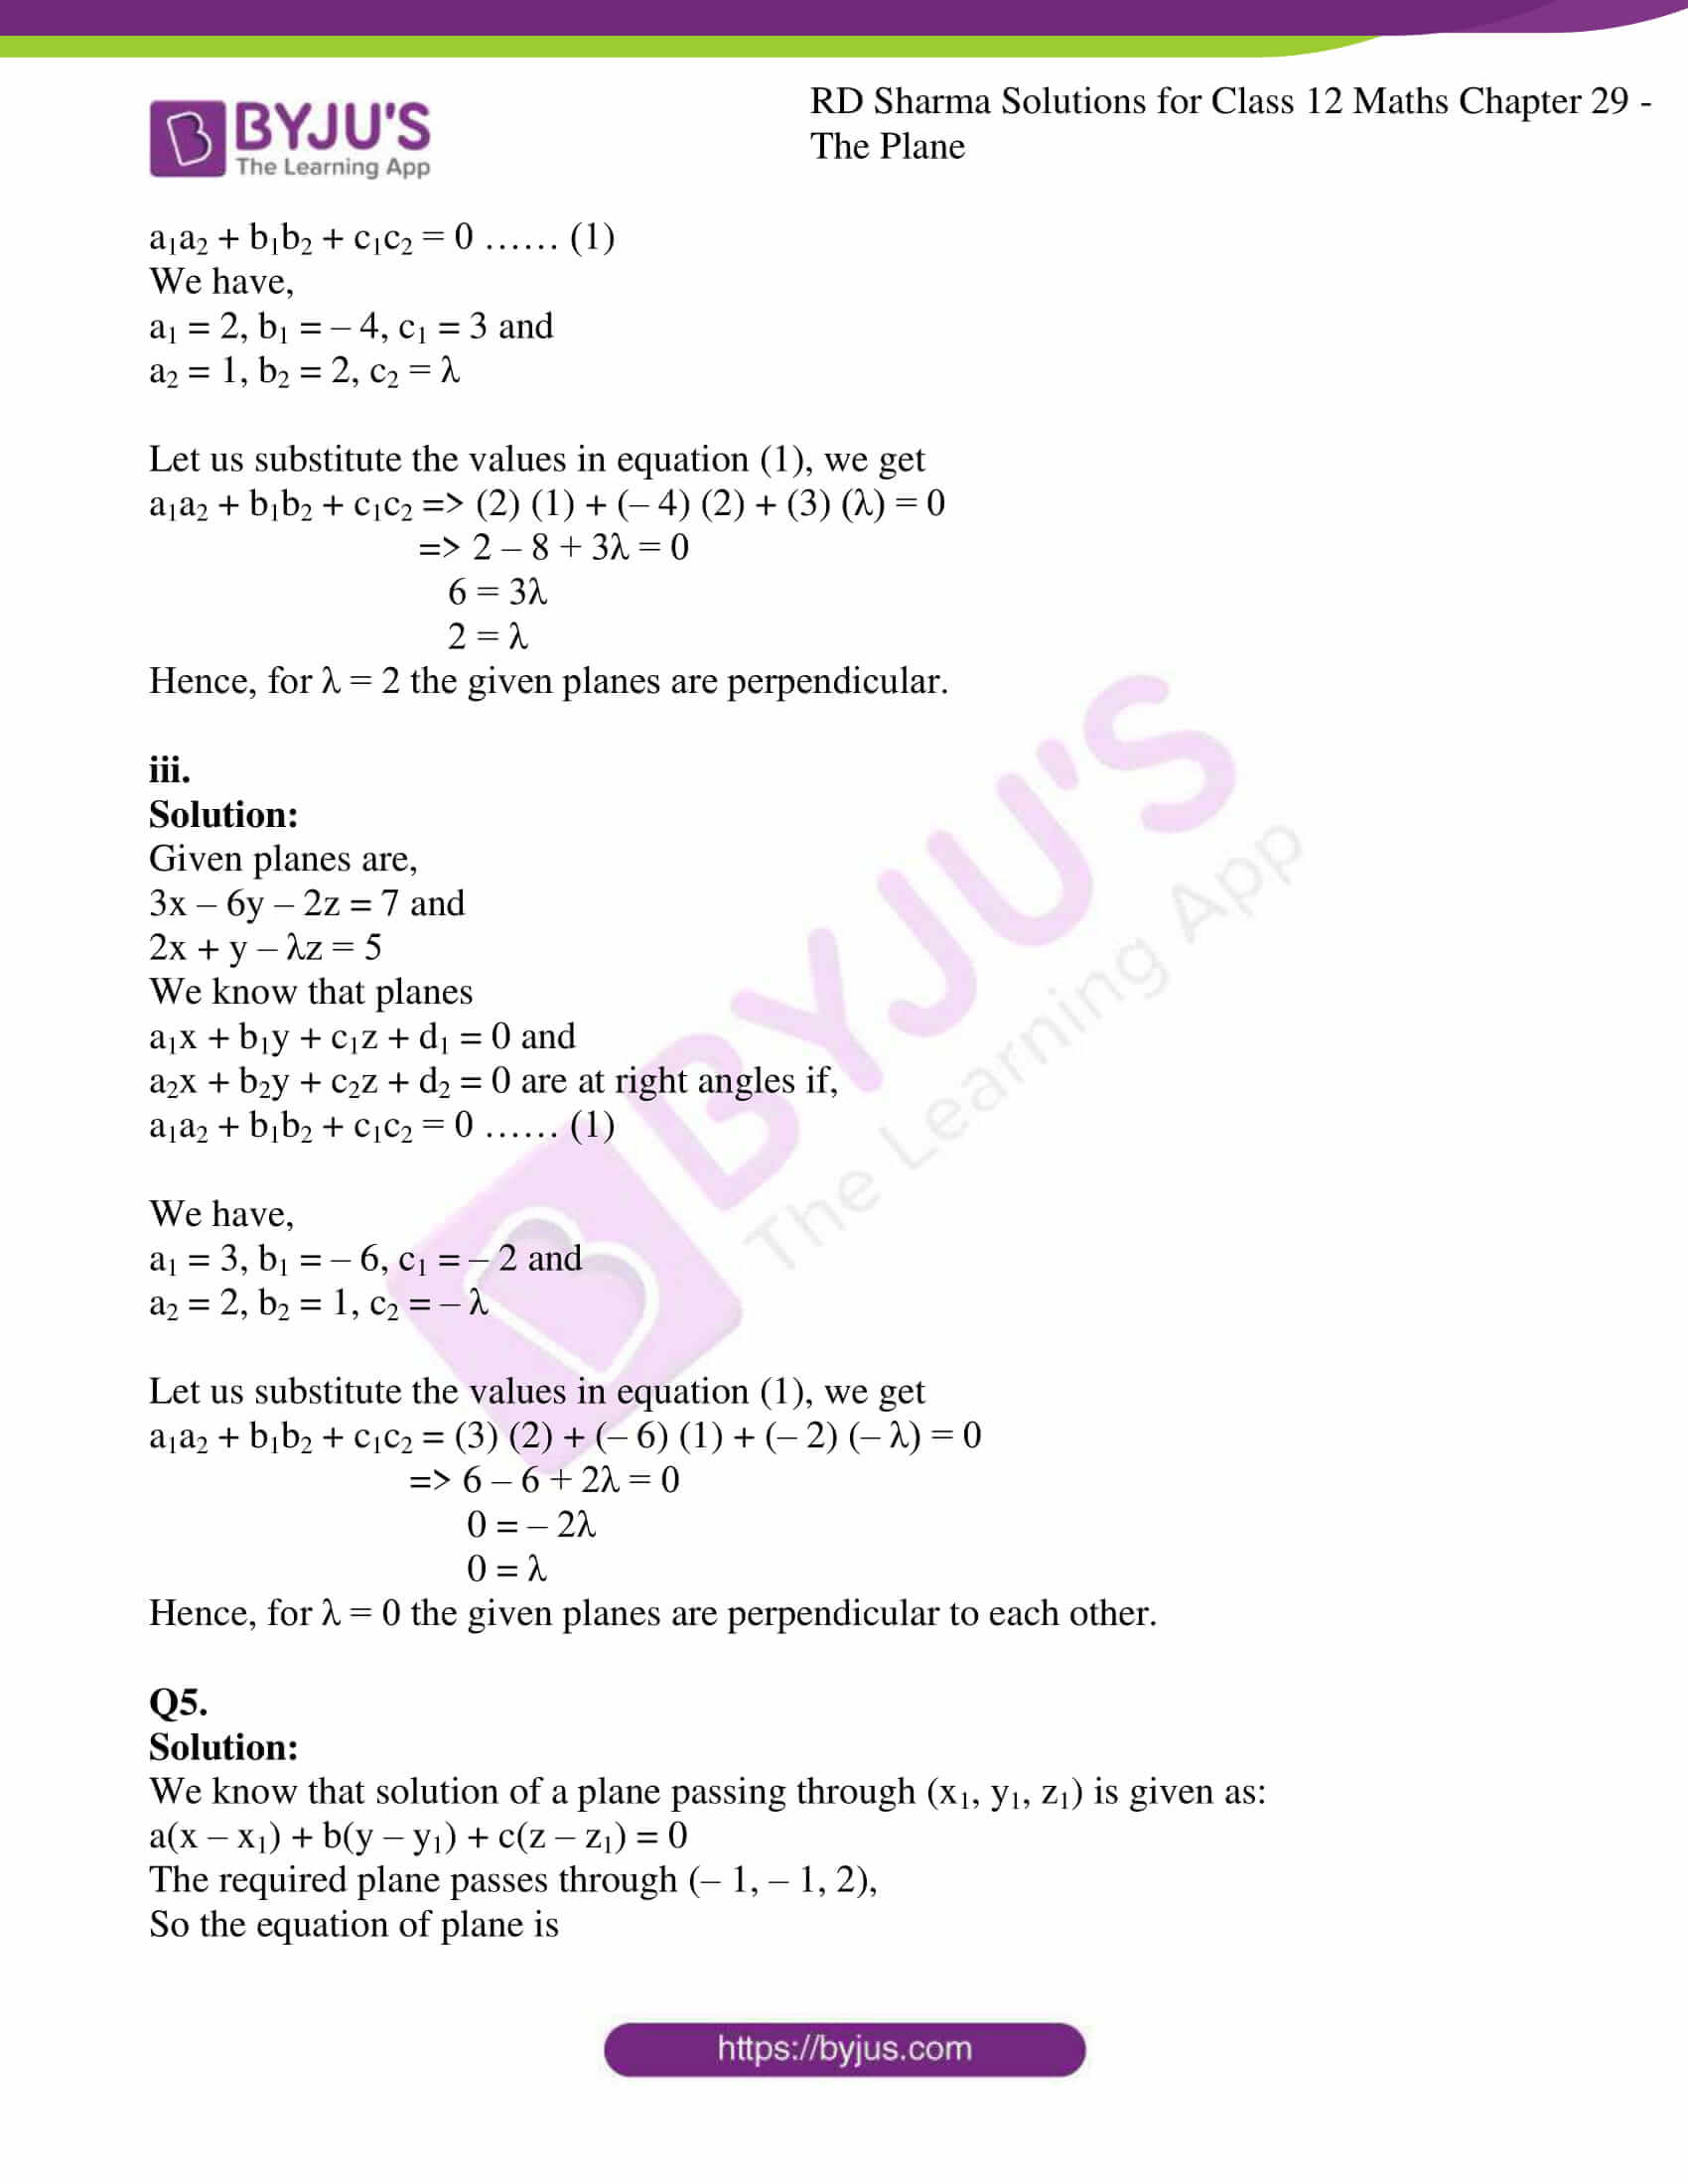 rd sharma solutions for class 12 maths chapter 29 ex 6 10